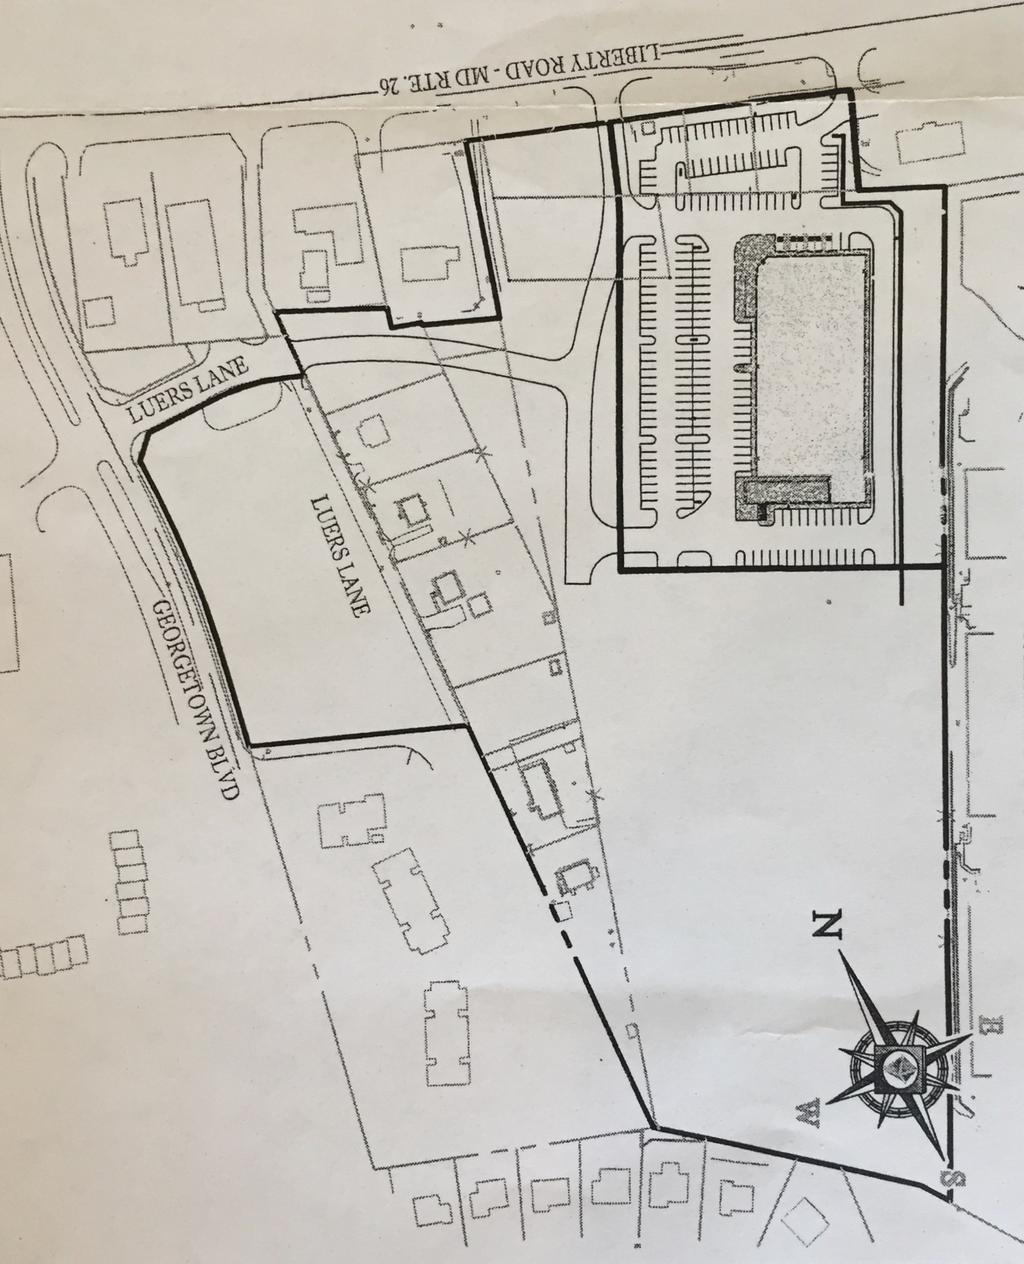 Reasons For Rejecting The LIDL Site Plan March 29, 2017 Background - On Wednesday, April 5, the Carroll County Planning and Zoning Commission is meeting to hear, among the various matters on its